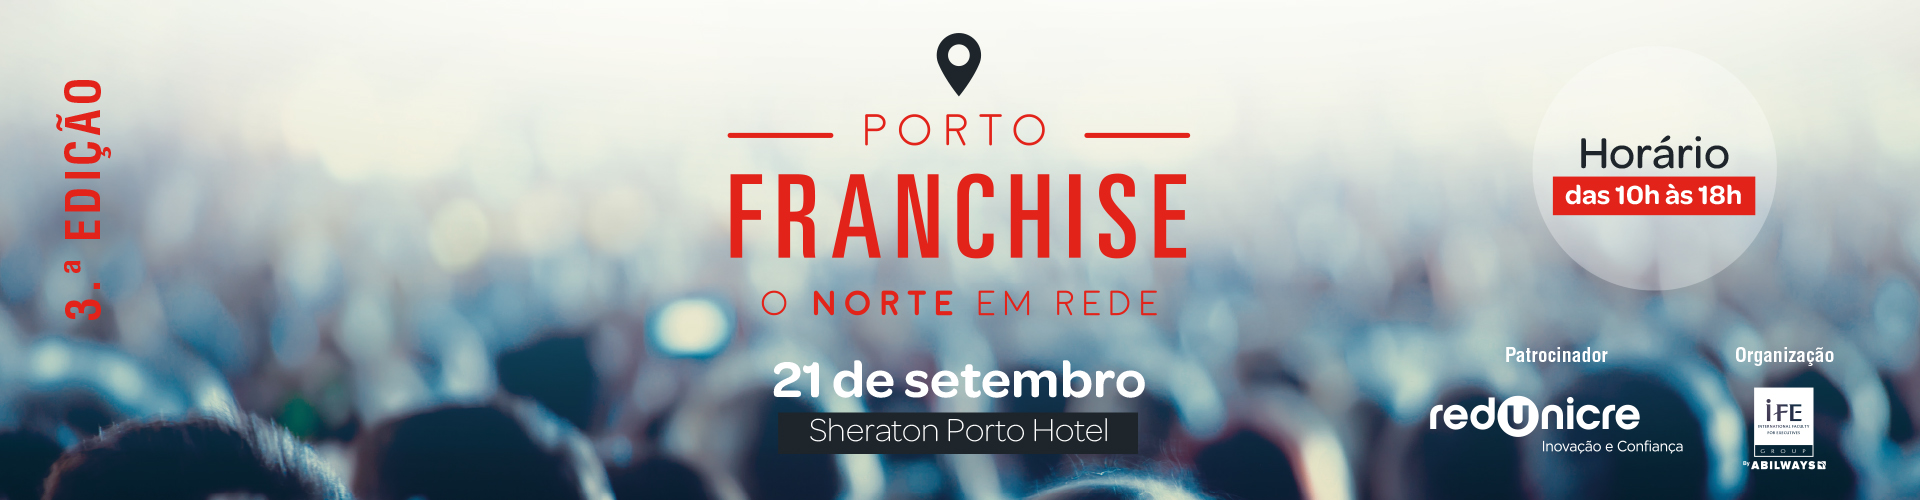 Porto Franchise, evento de franchising no norte